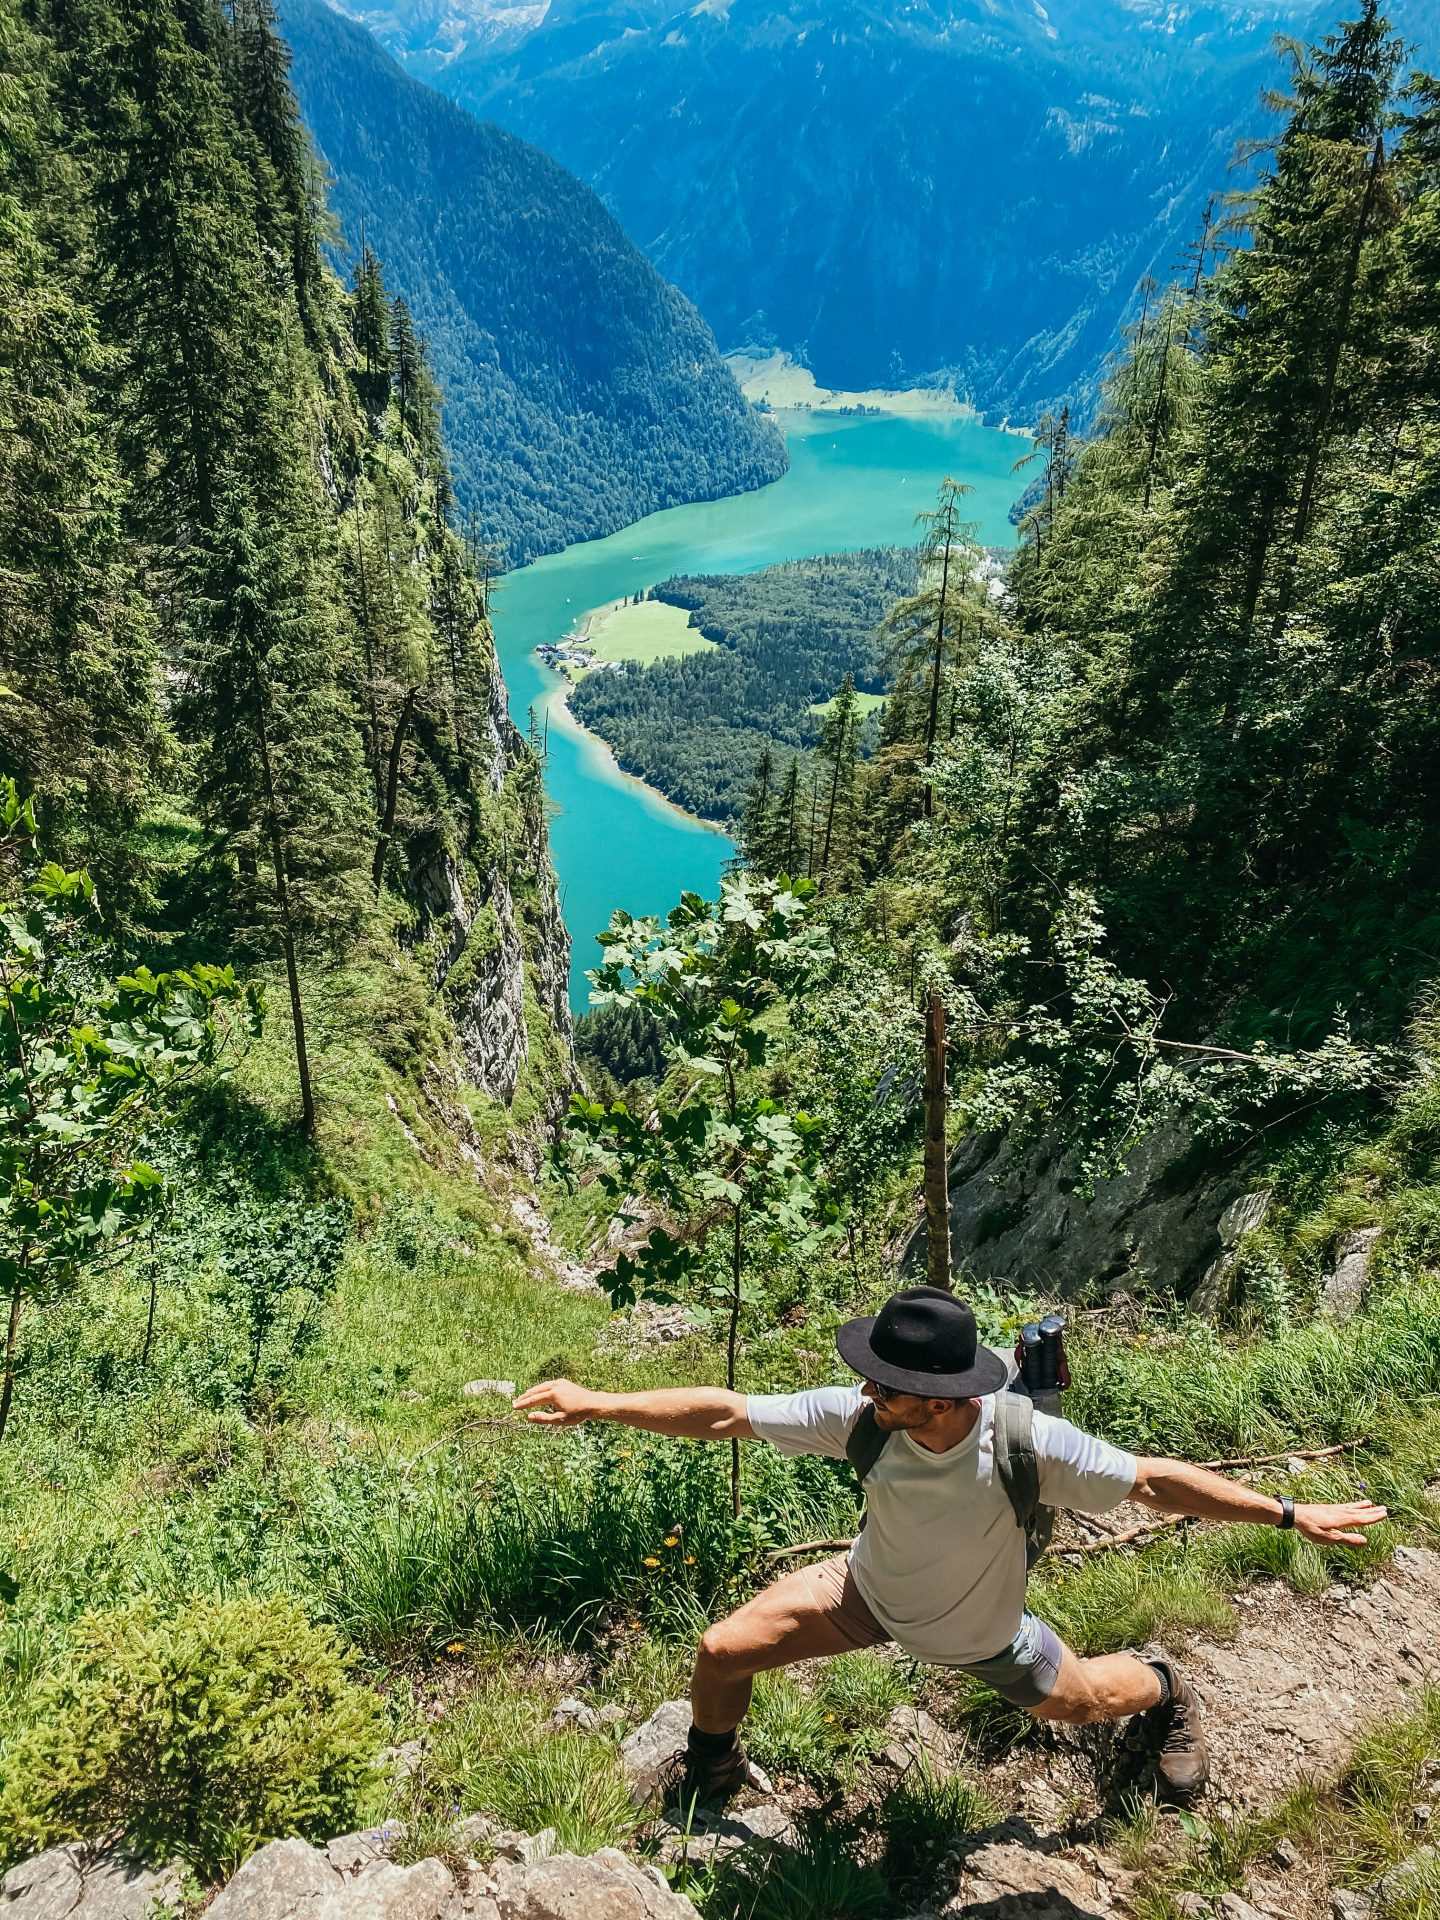 Man hiking at the shores of the Königssee in Germany